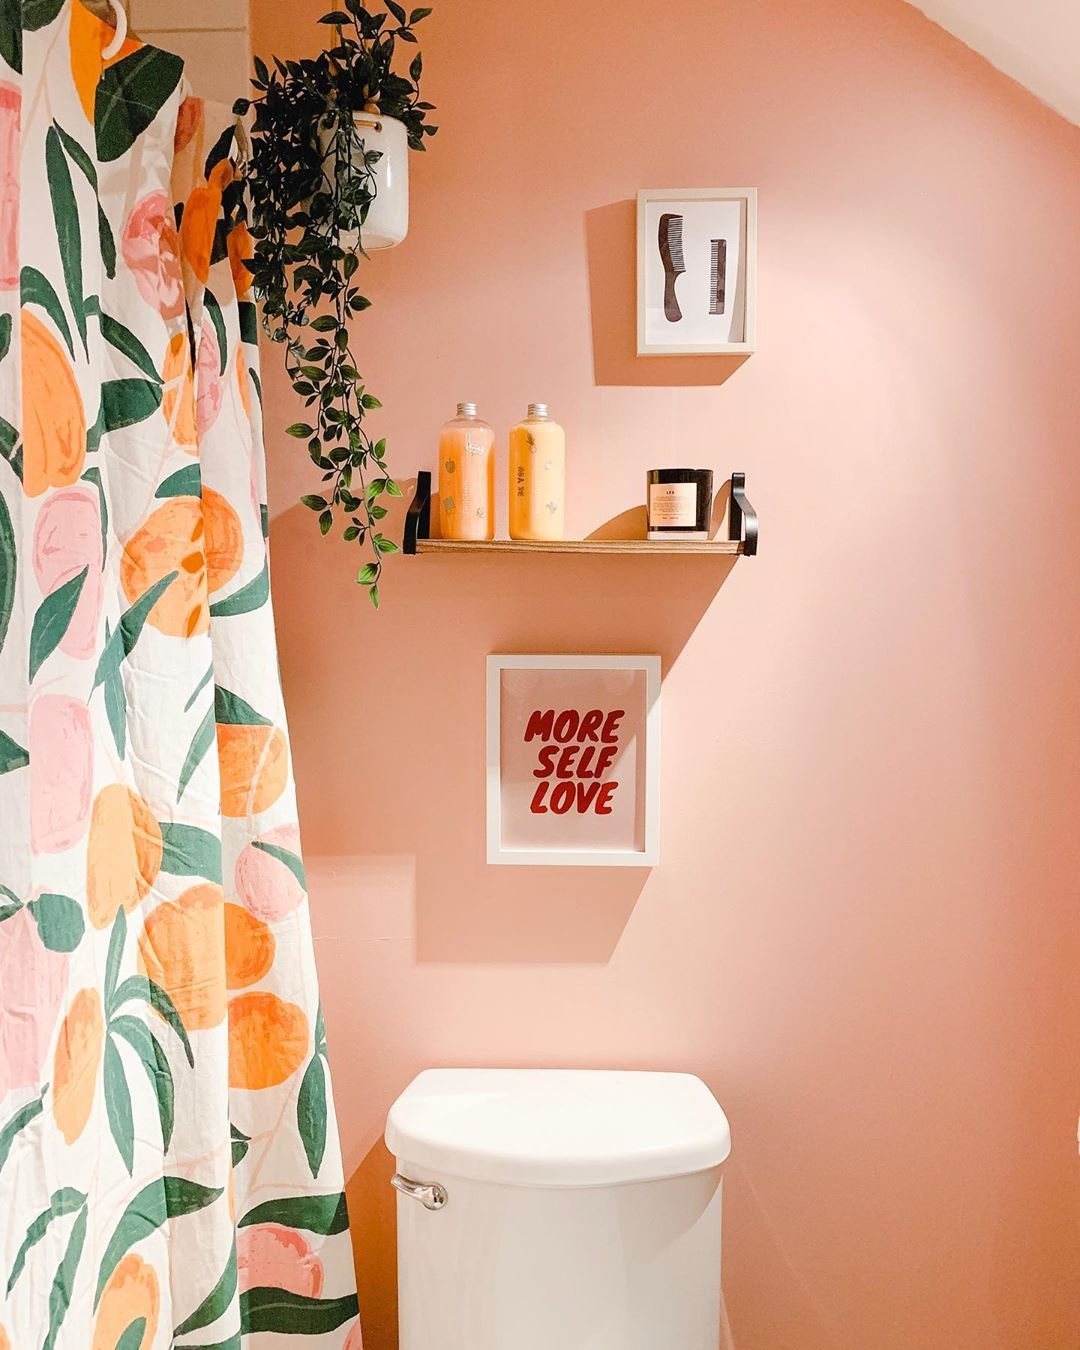 """Photo of alexandra gater on Instagram: """"Have you seen my new video yet? I show you how just a few key changes can make a teeny tiny bathroom the most stylish ever! Swipe up in…"""""""